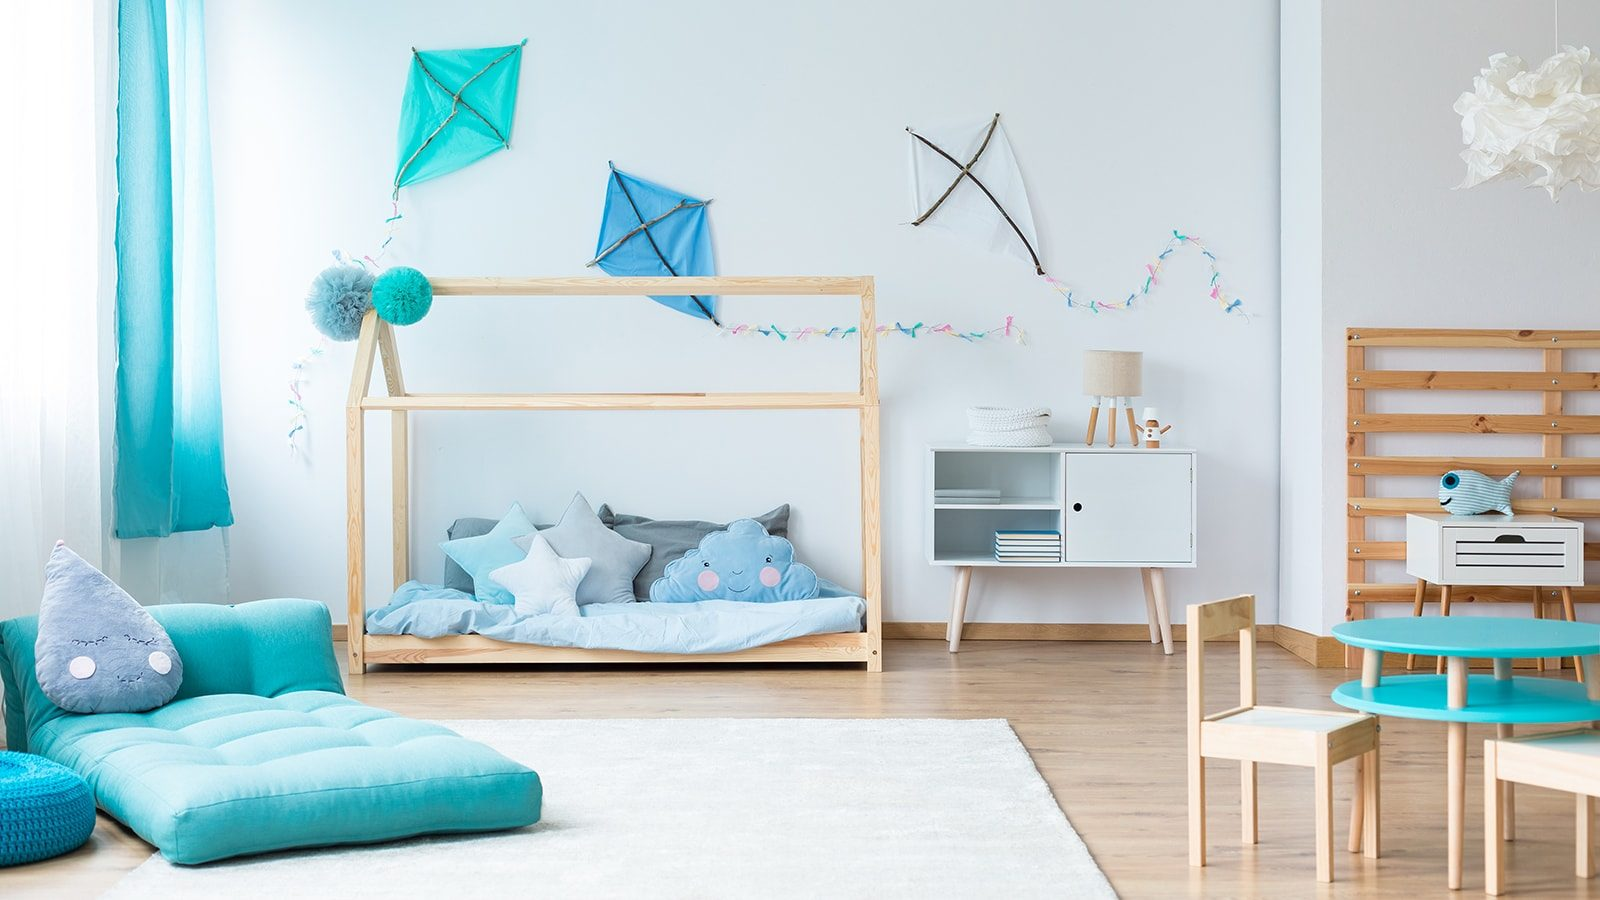 Kid's room with blue color scheme